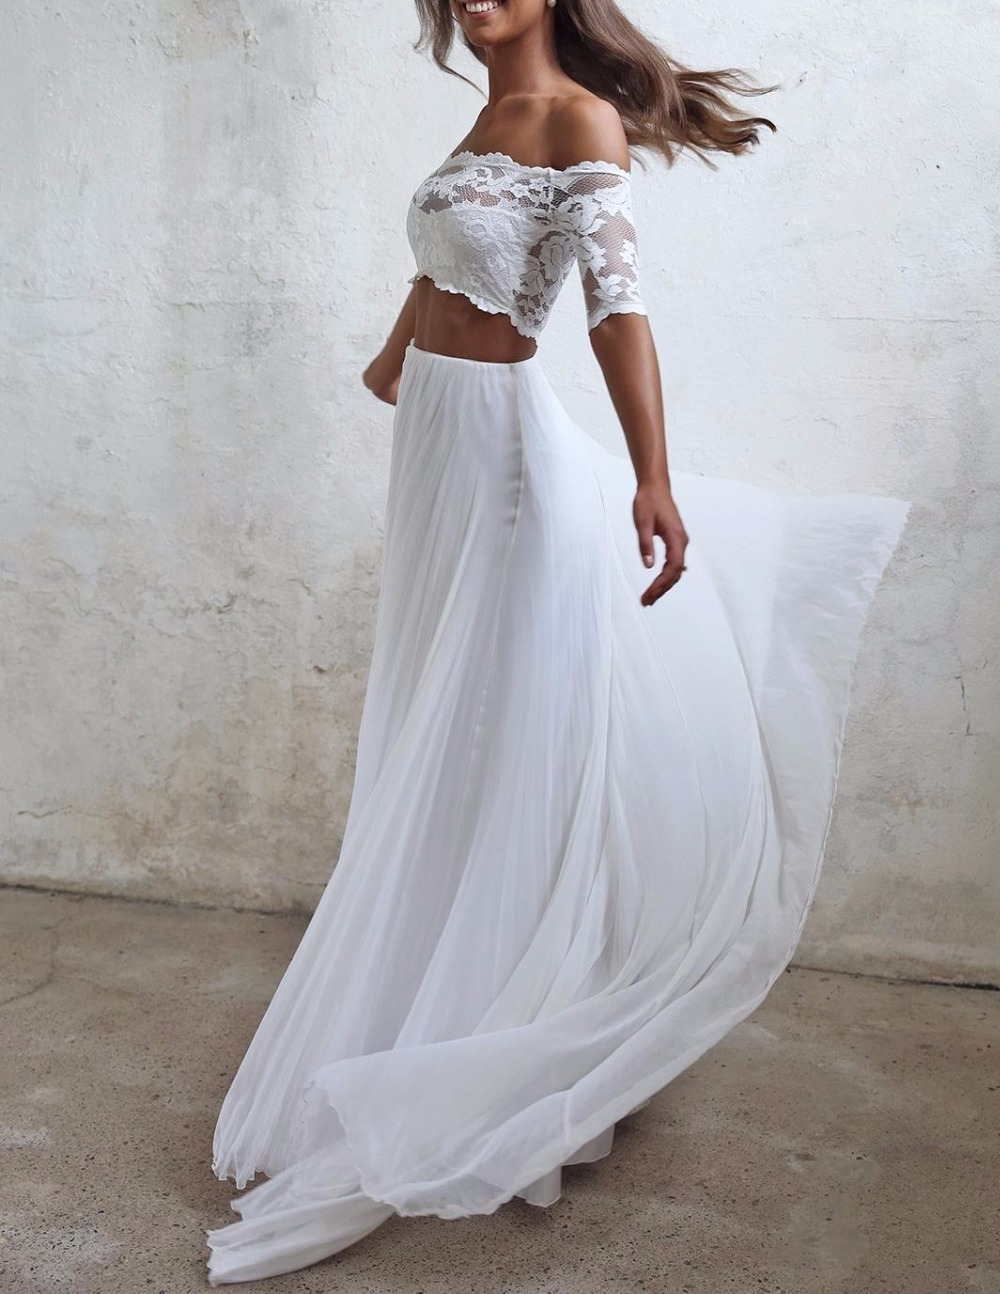 seductive lace 2 two piece wedding dresses summer chiffon